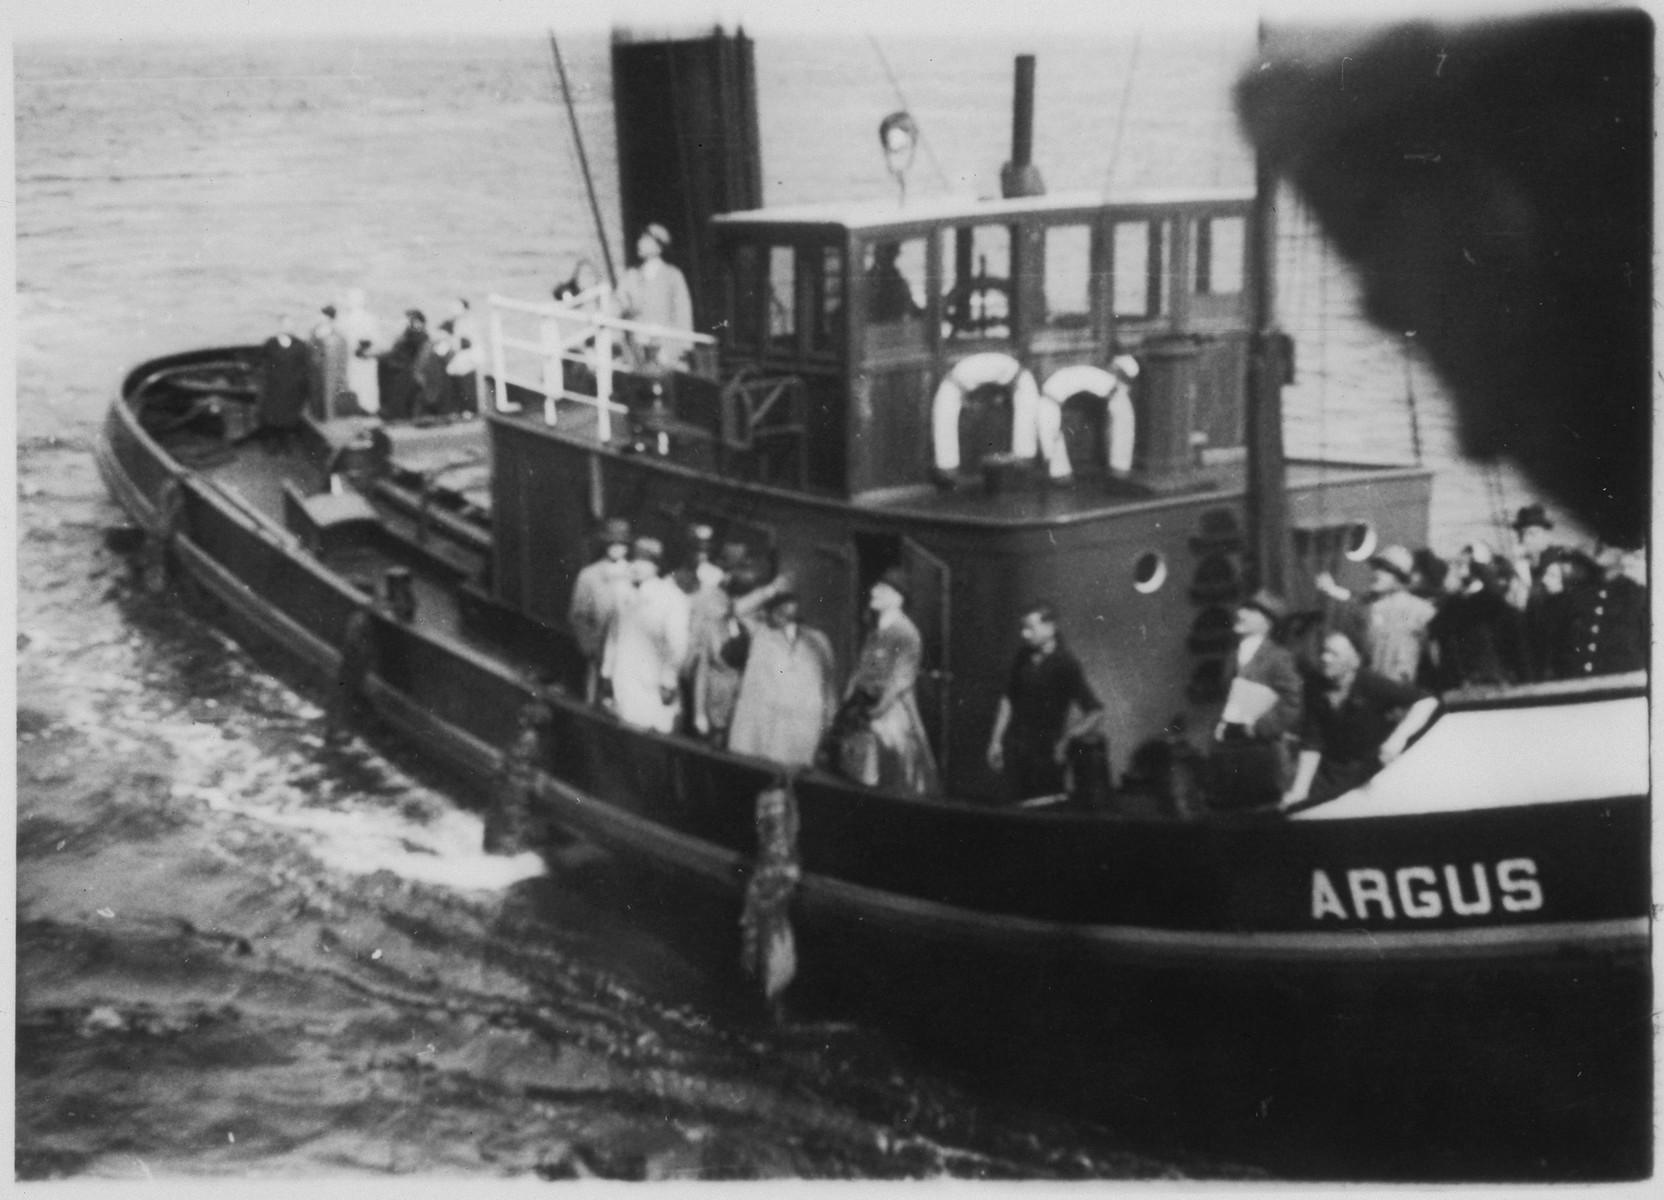 Relatives of passengers aboard the MS St. Louis approach the refugee ship in a tugboat called the Argus.